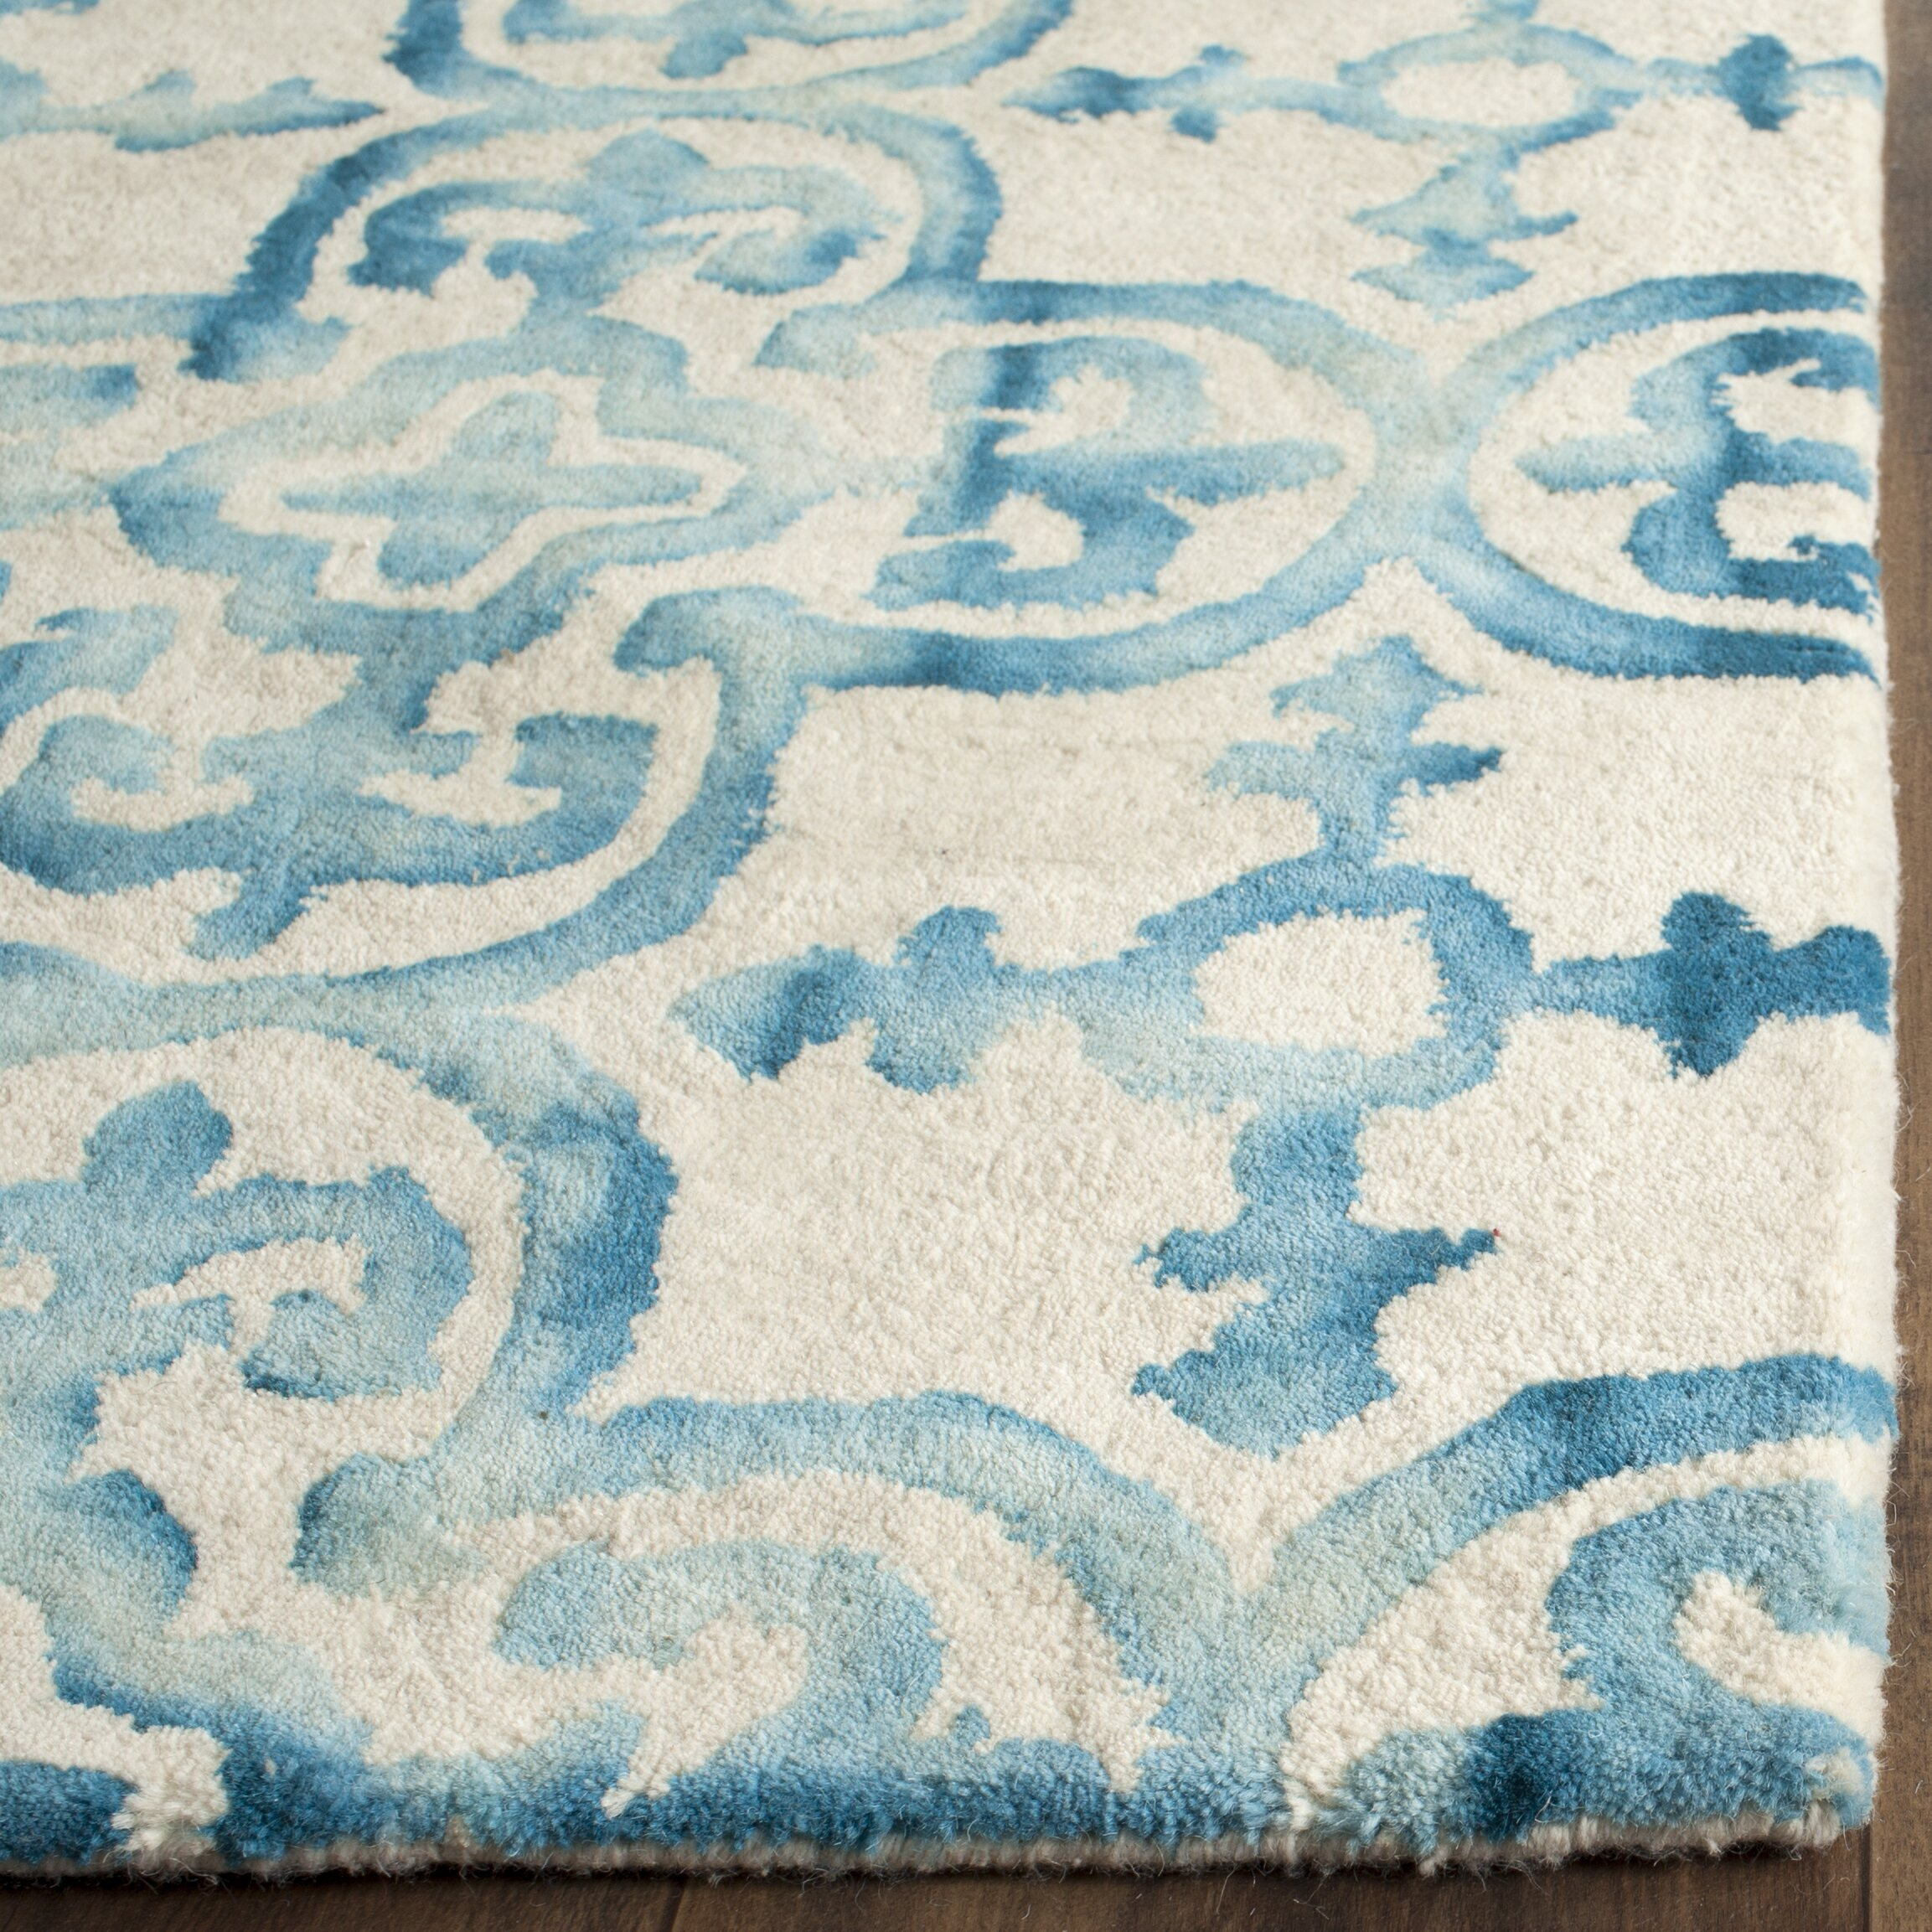 Turquoise Area Rug Amazon Com: Bungalow Rose Castries Hand-Tufted Ivory/Turquoise Area